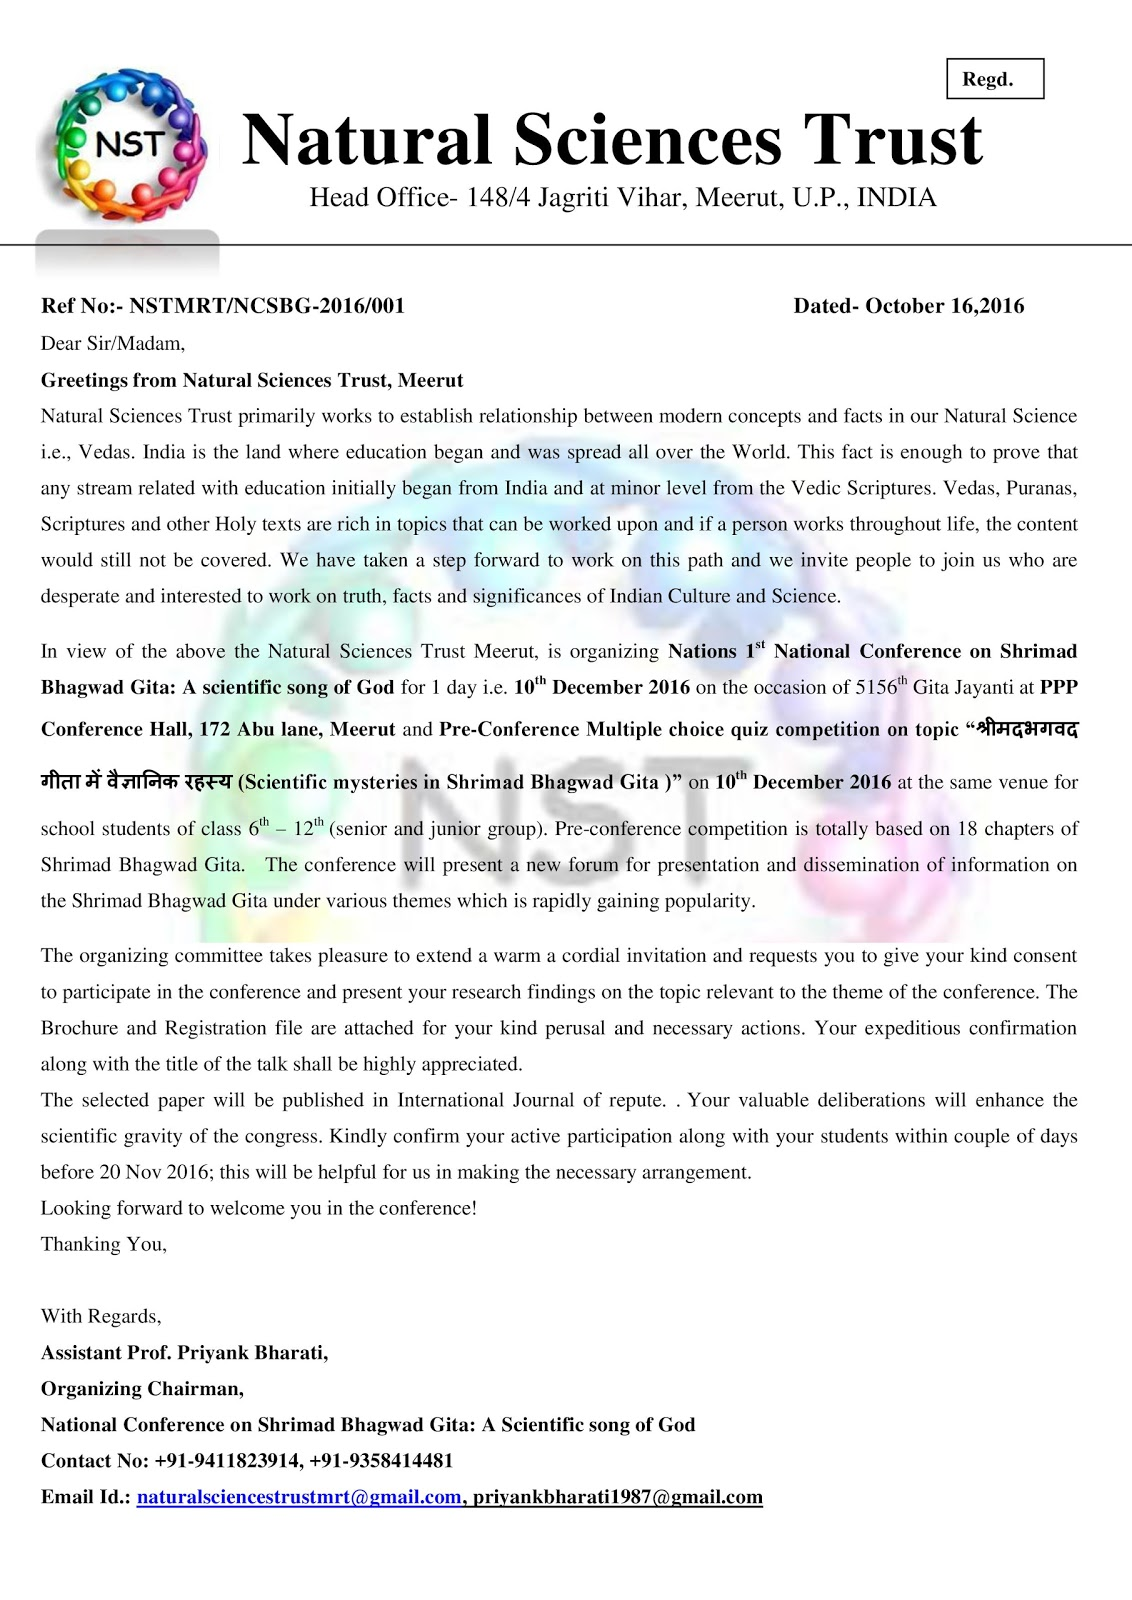 Natural sciences trustmeerut invitation letter for national conference on shrimad bhagwad gita a scientific song of god stopboris Images